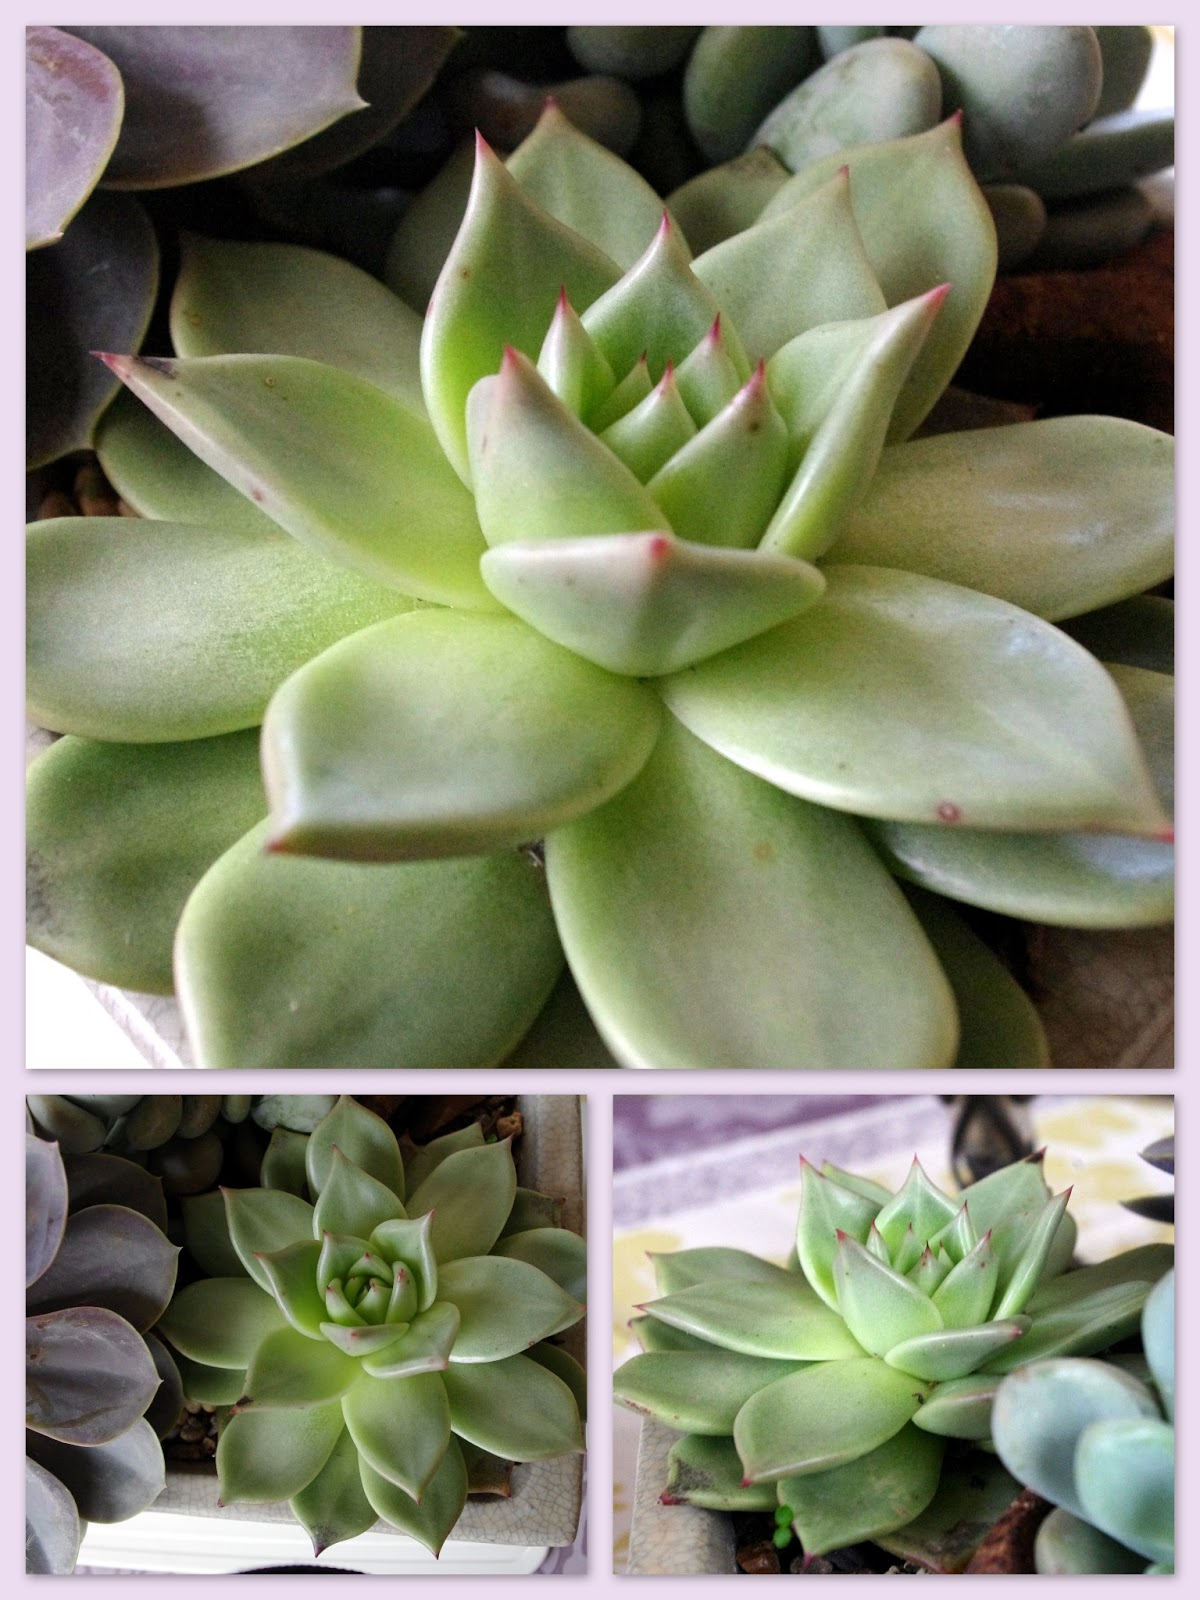 Plantes succulentes photos latest blog dco design joli place with plantes succulentes photos - Plante succulente entretien ...